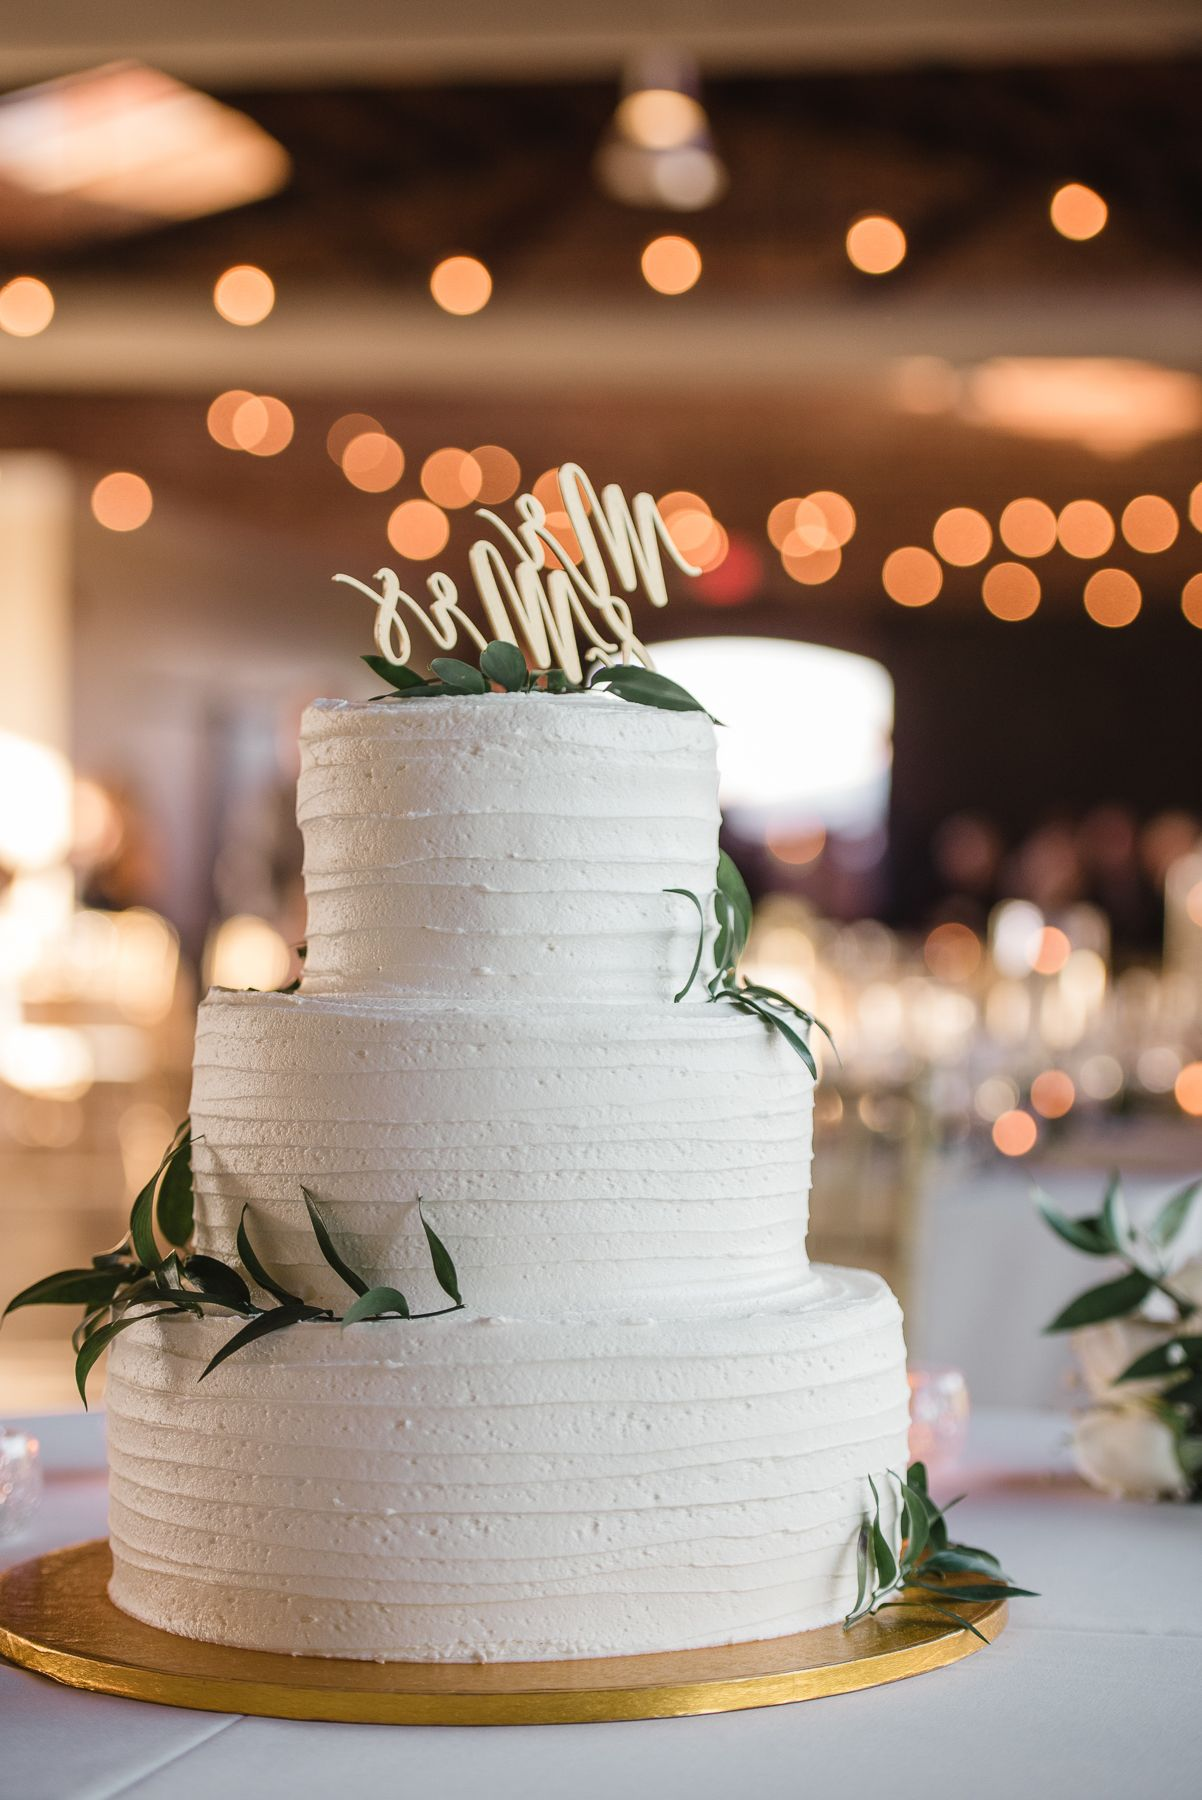 simple wedding cake with greenery at morean center in st pete urban wedding venue